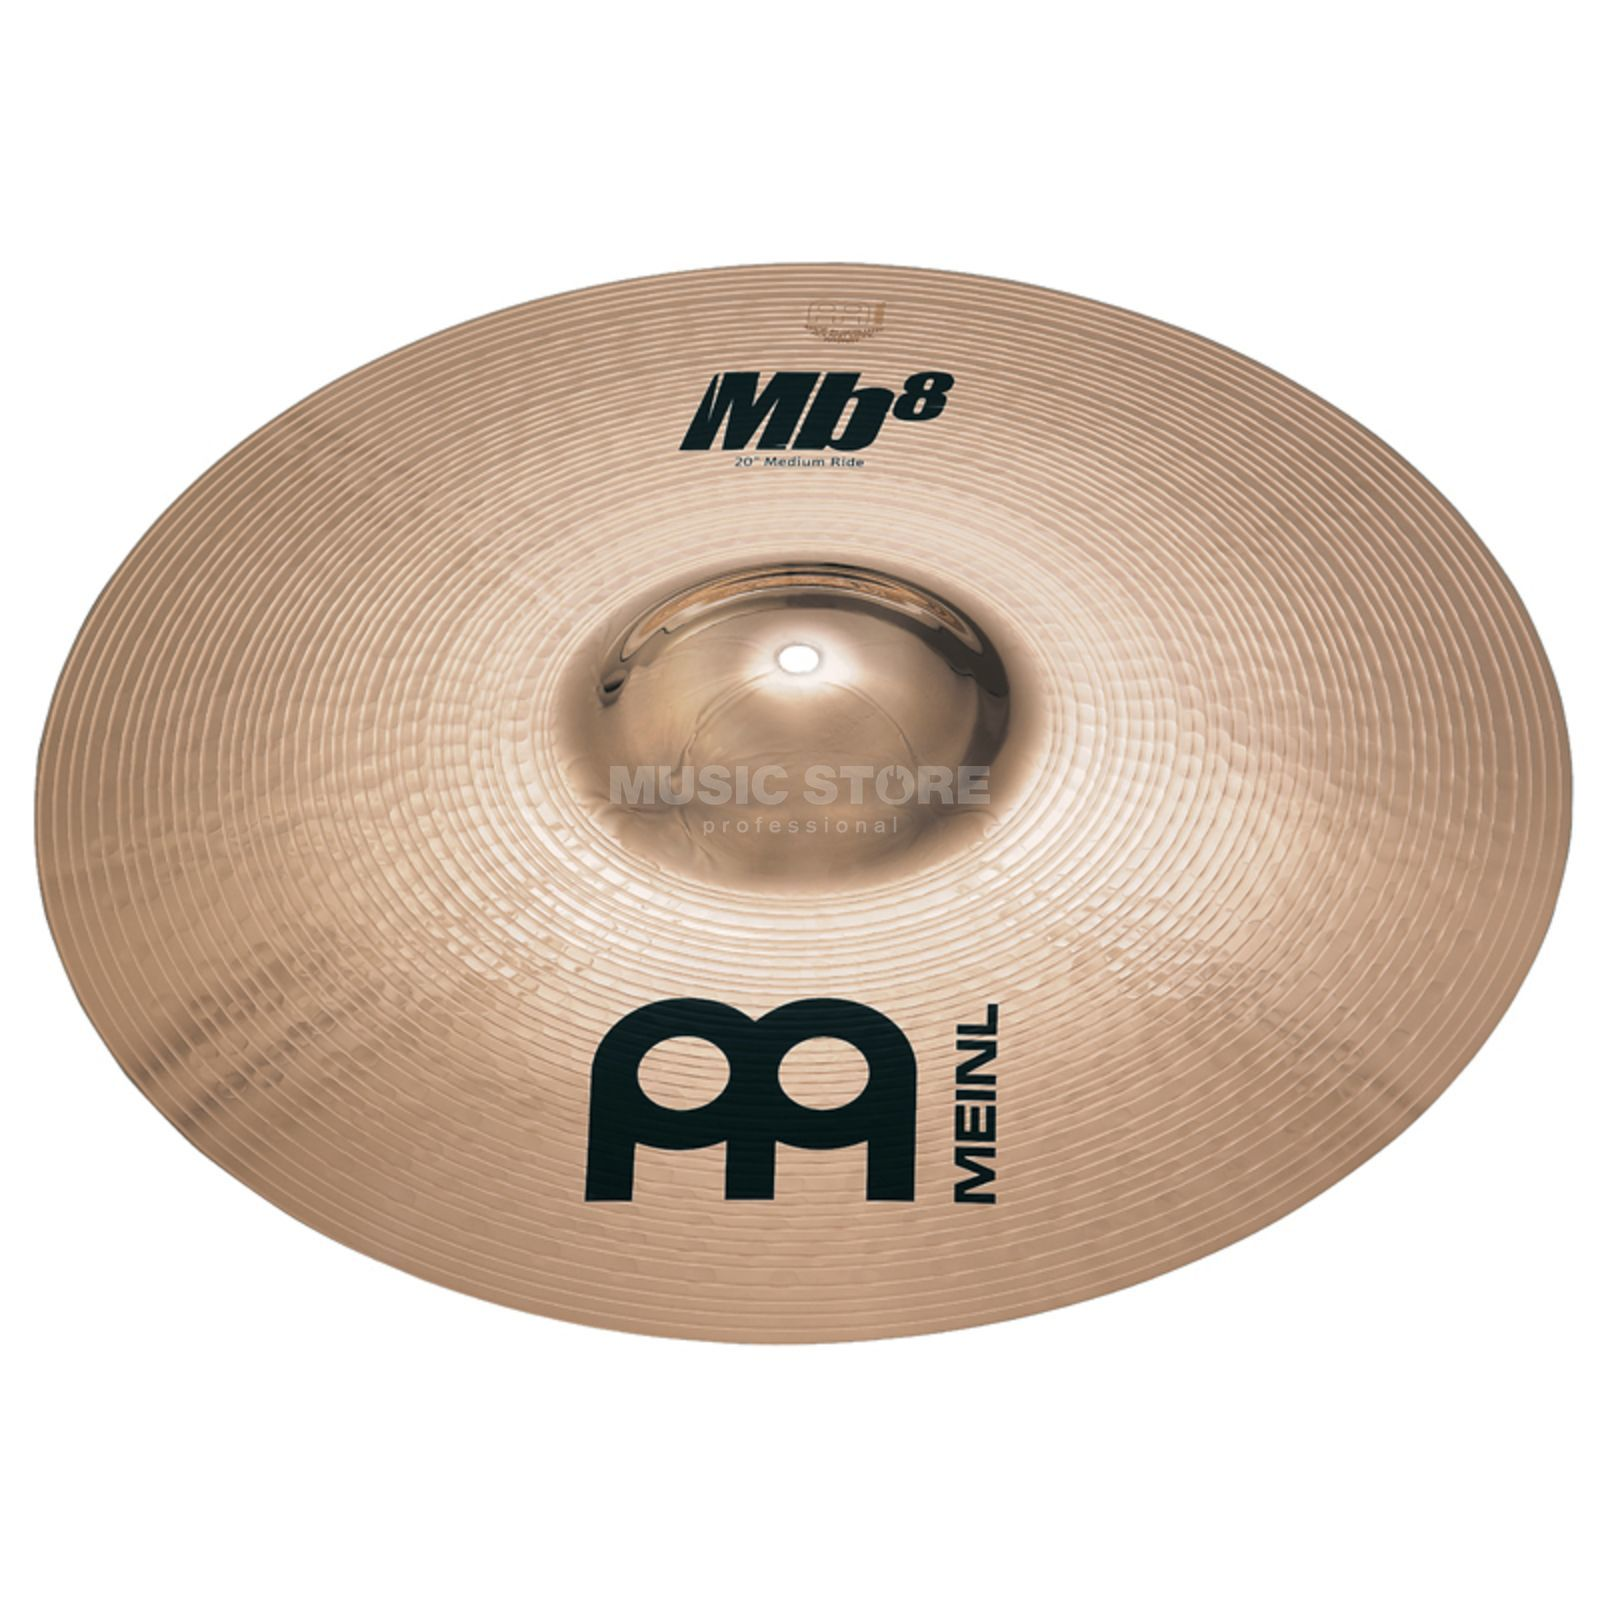 "Meinl MB8 Heavy Ride 22"", MB8-22HR-B, Brilliant Finish Produktbillede"